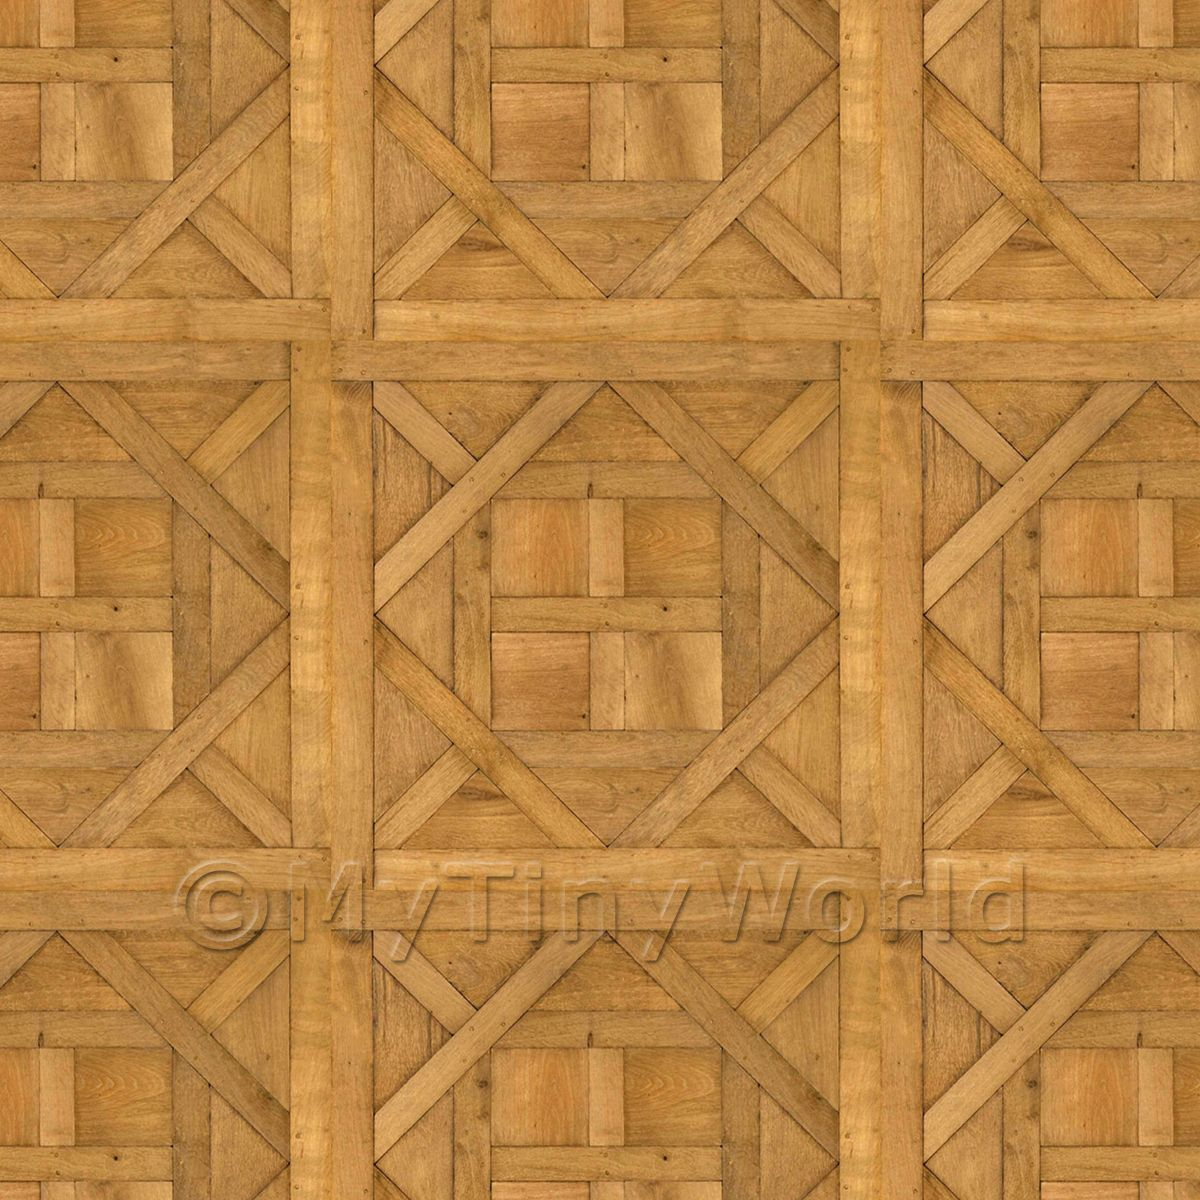 Dolls House Aremberg Large Panel Wood Effect Parquet Floor